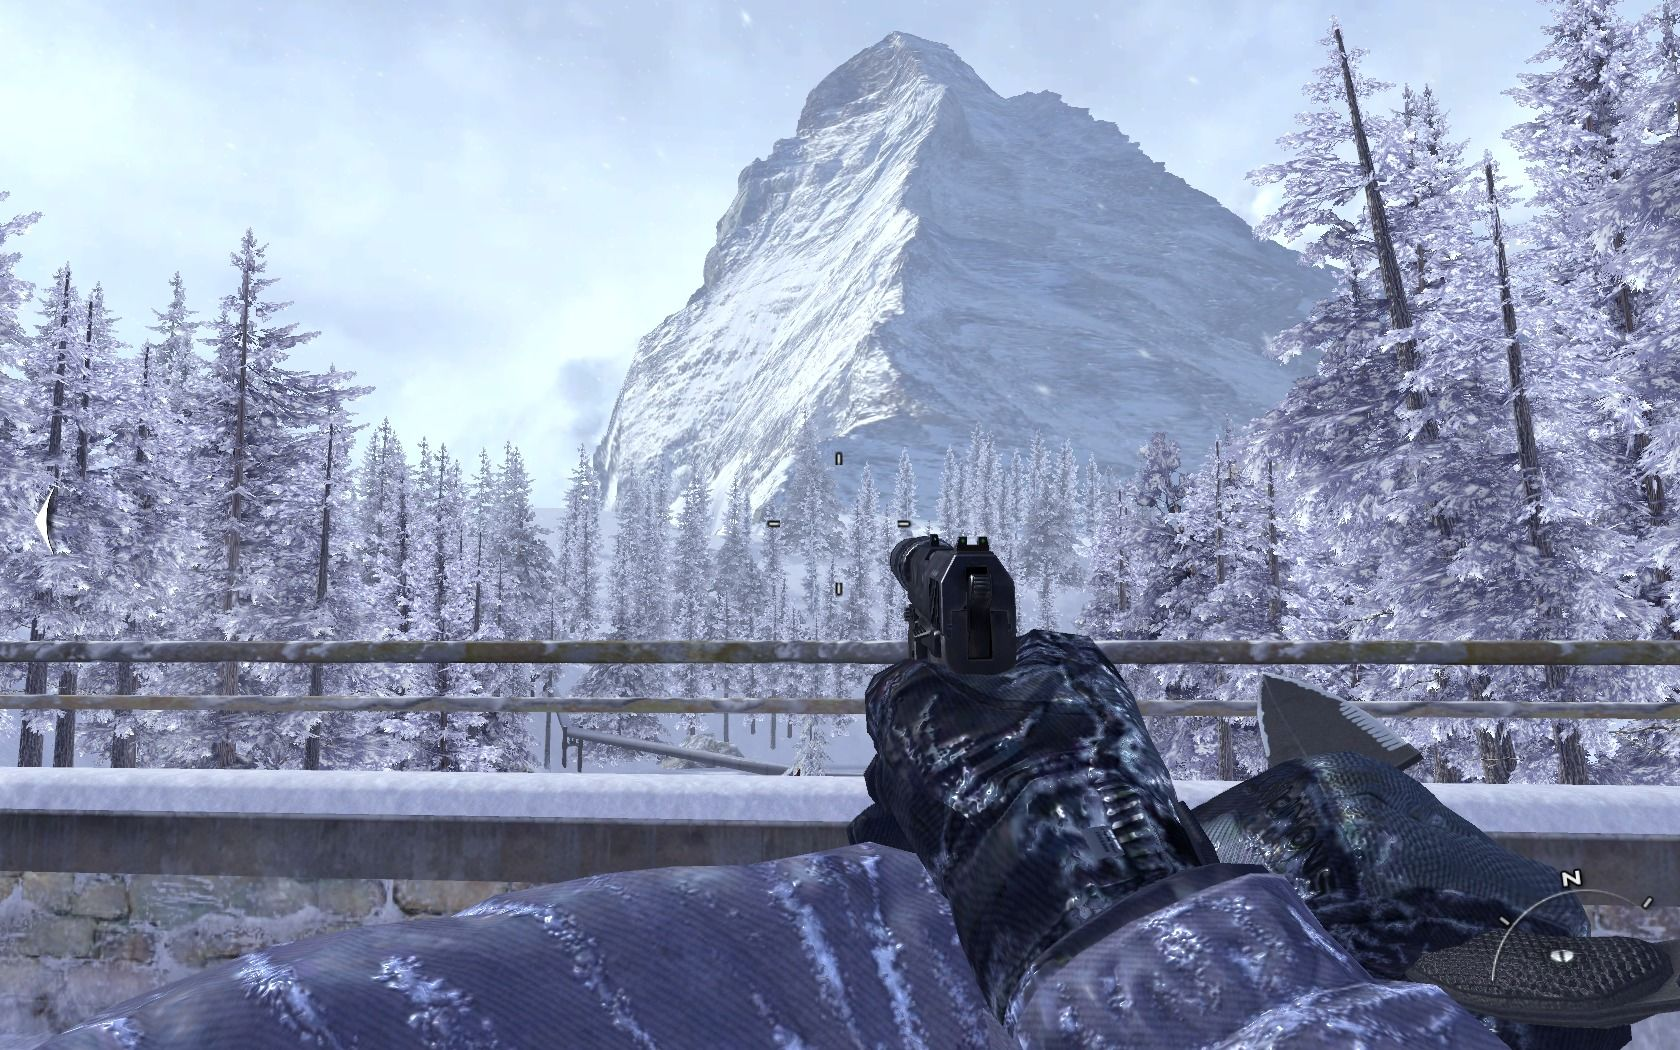 Call of Duty: Modern Warfare 2 Windows Stopping to admire the view may easily cost you your life.